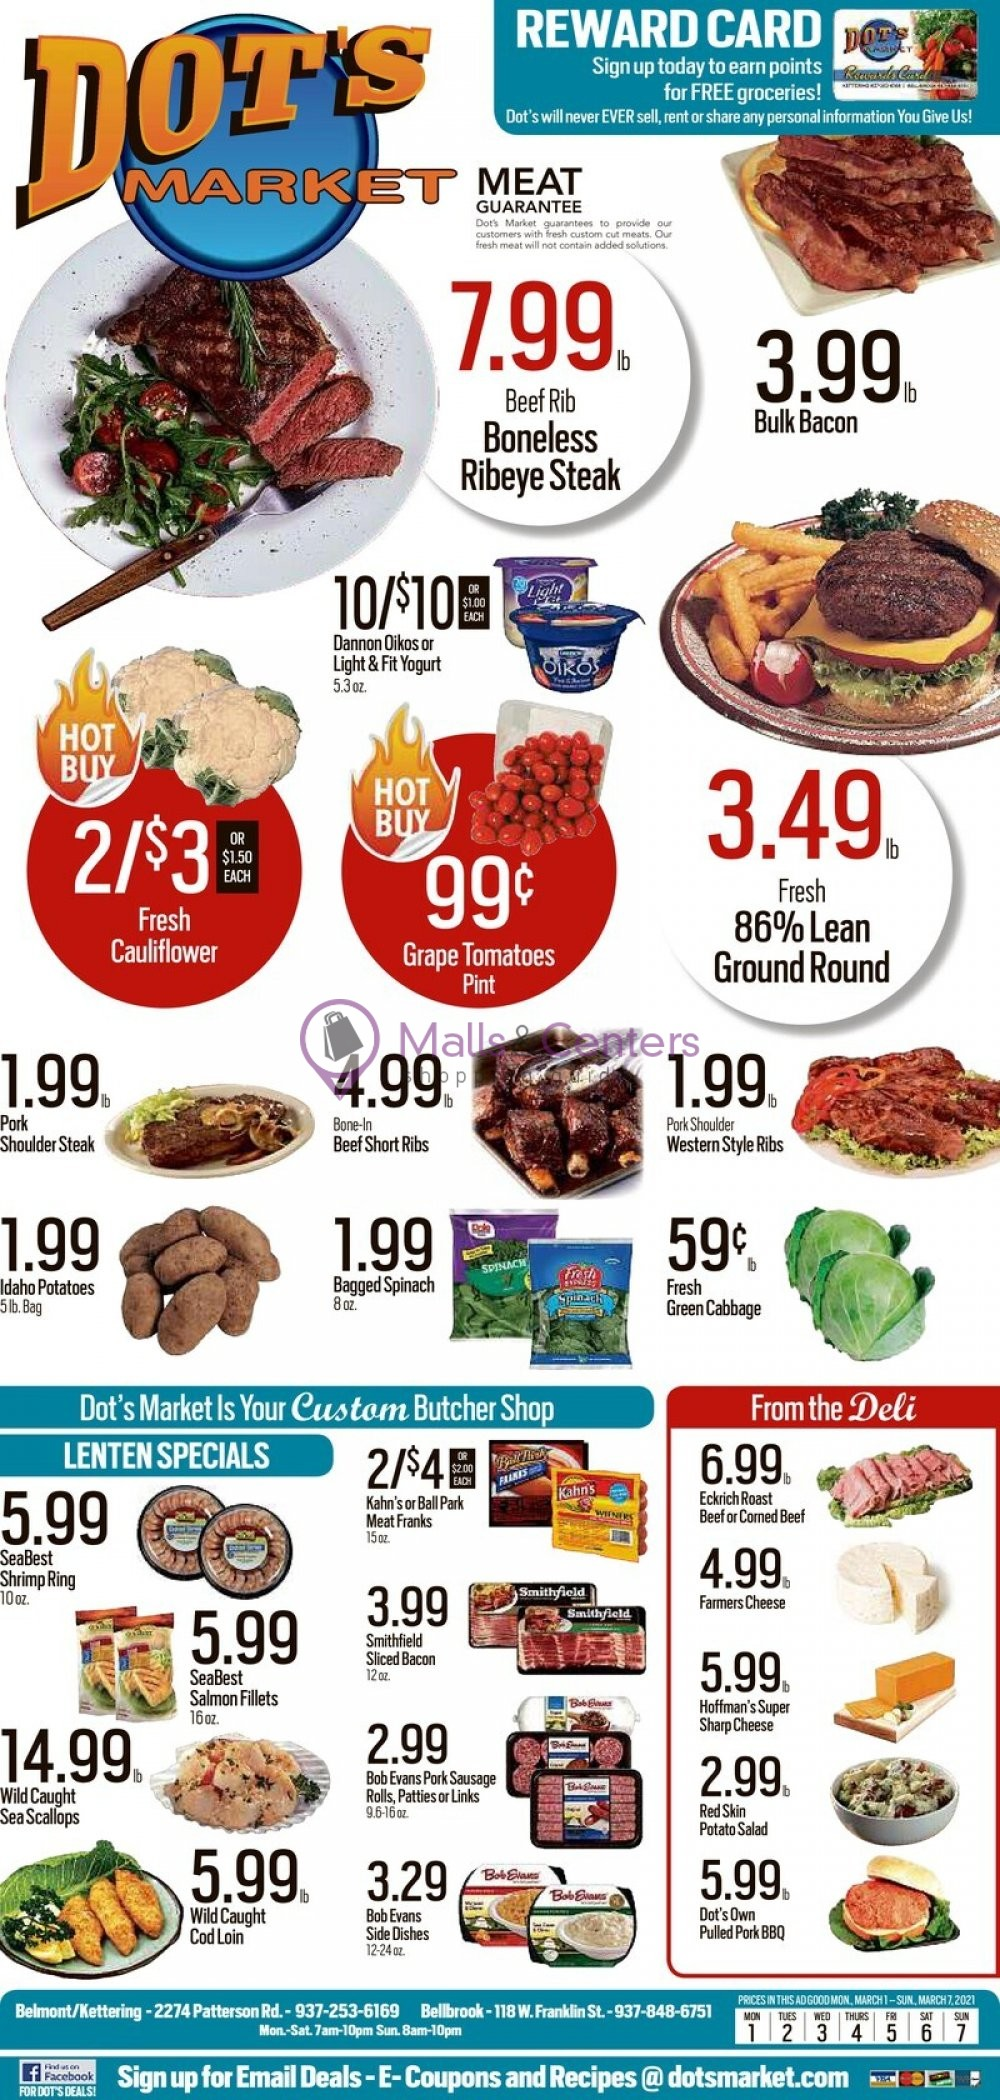 weekly ads Dot's Market - page 1 - mallscenters.com